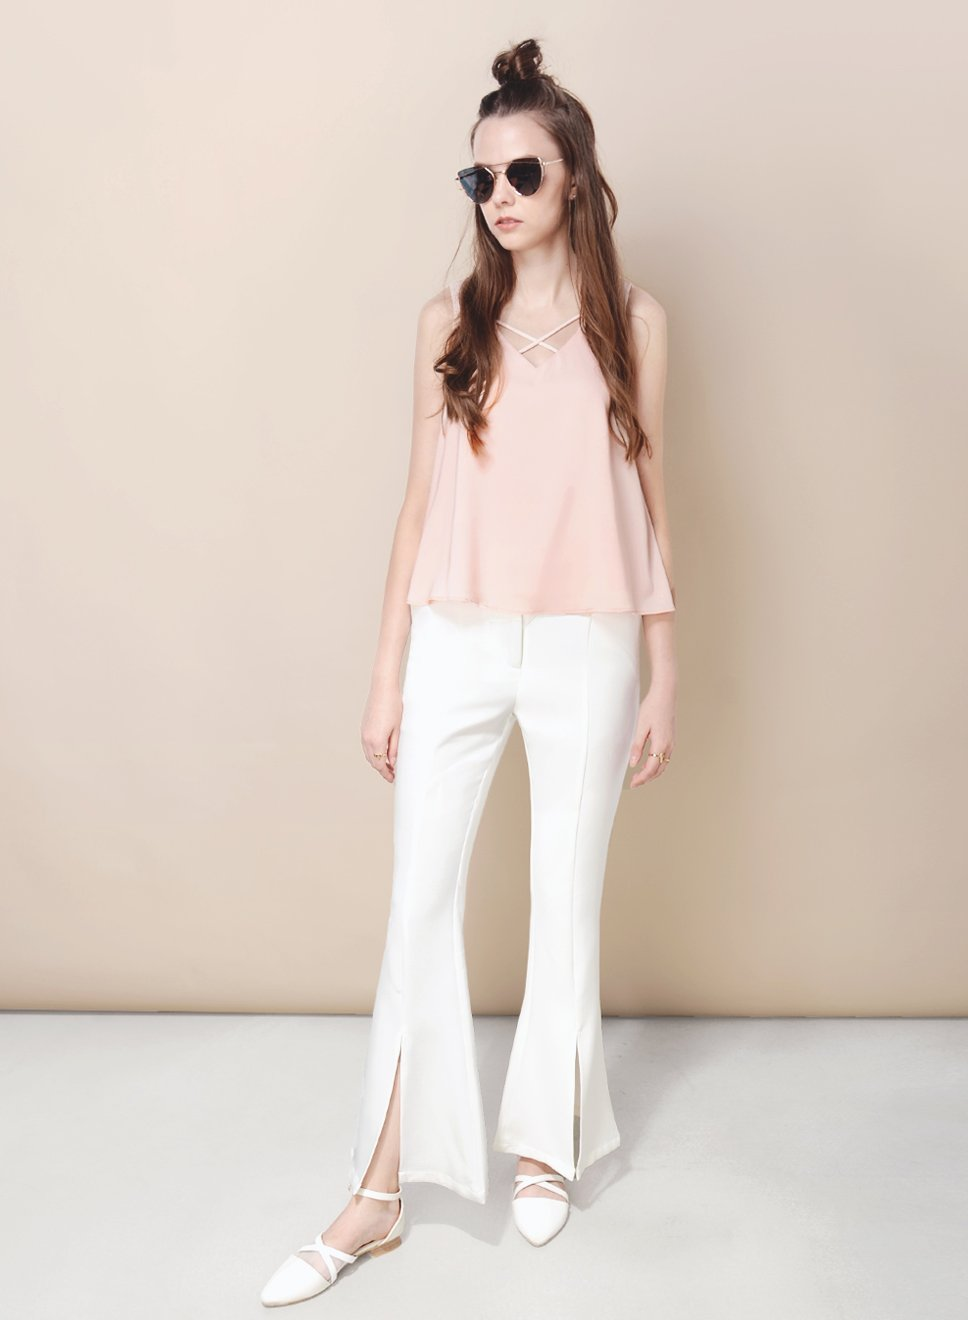 SUNDER split front pants (White) - And Well Dressed